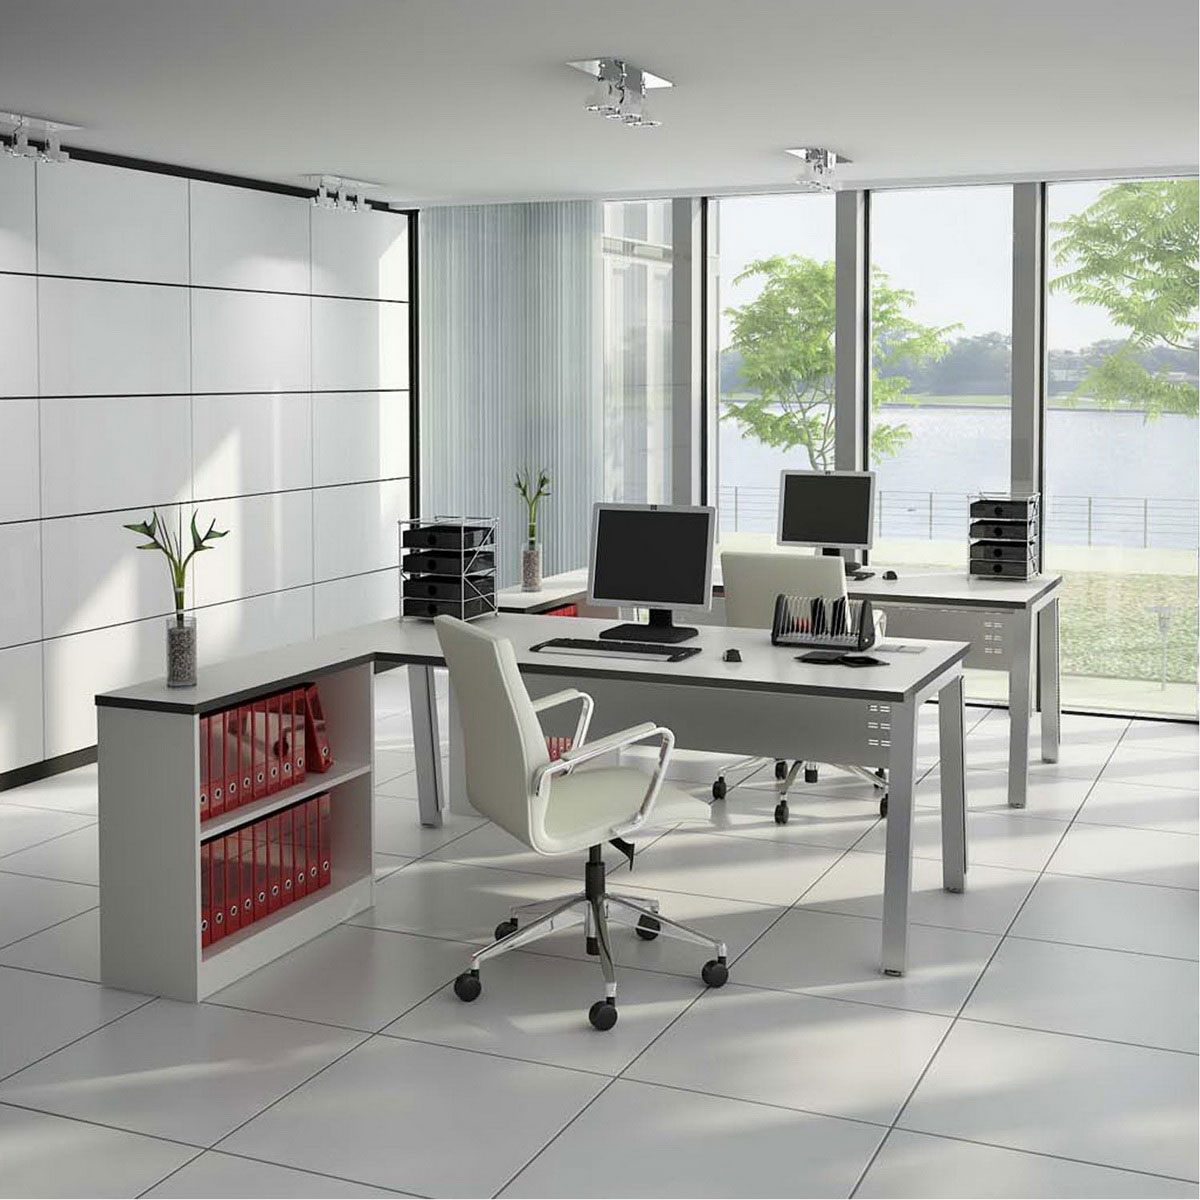 Office interior design dreams house furniture for Interior designs for small office